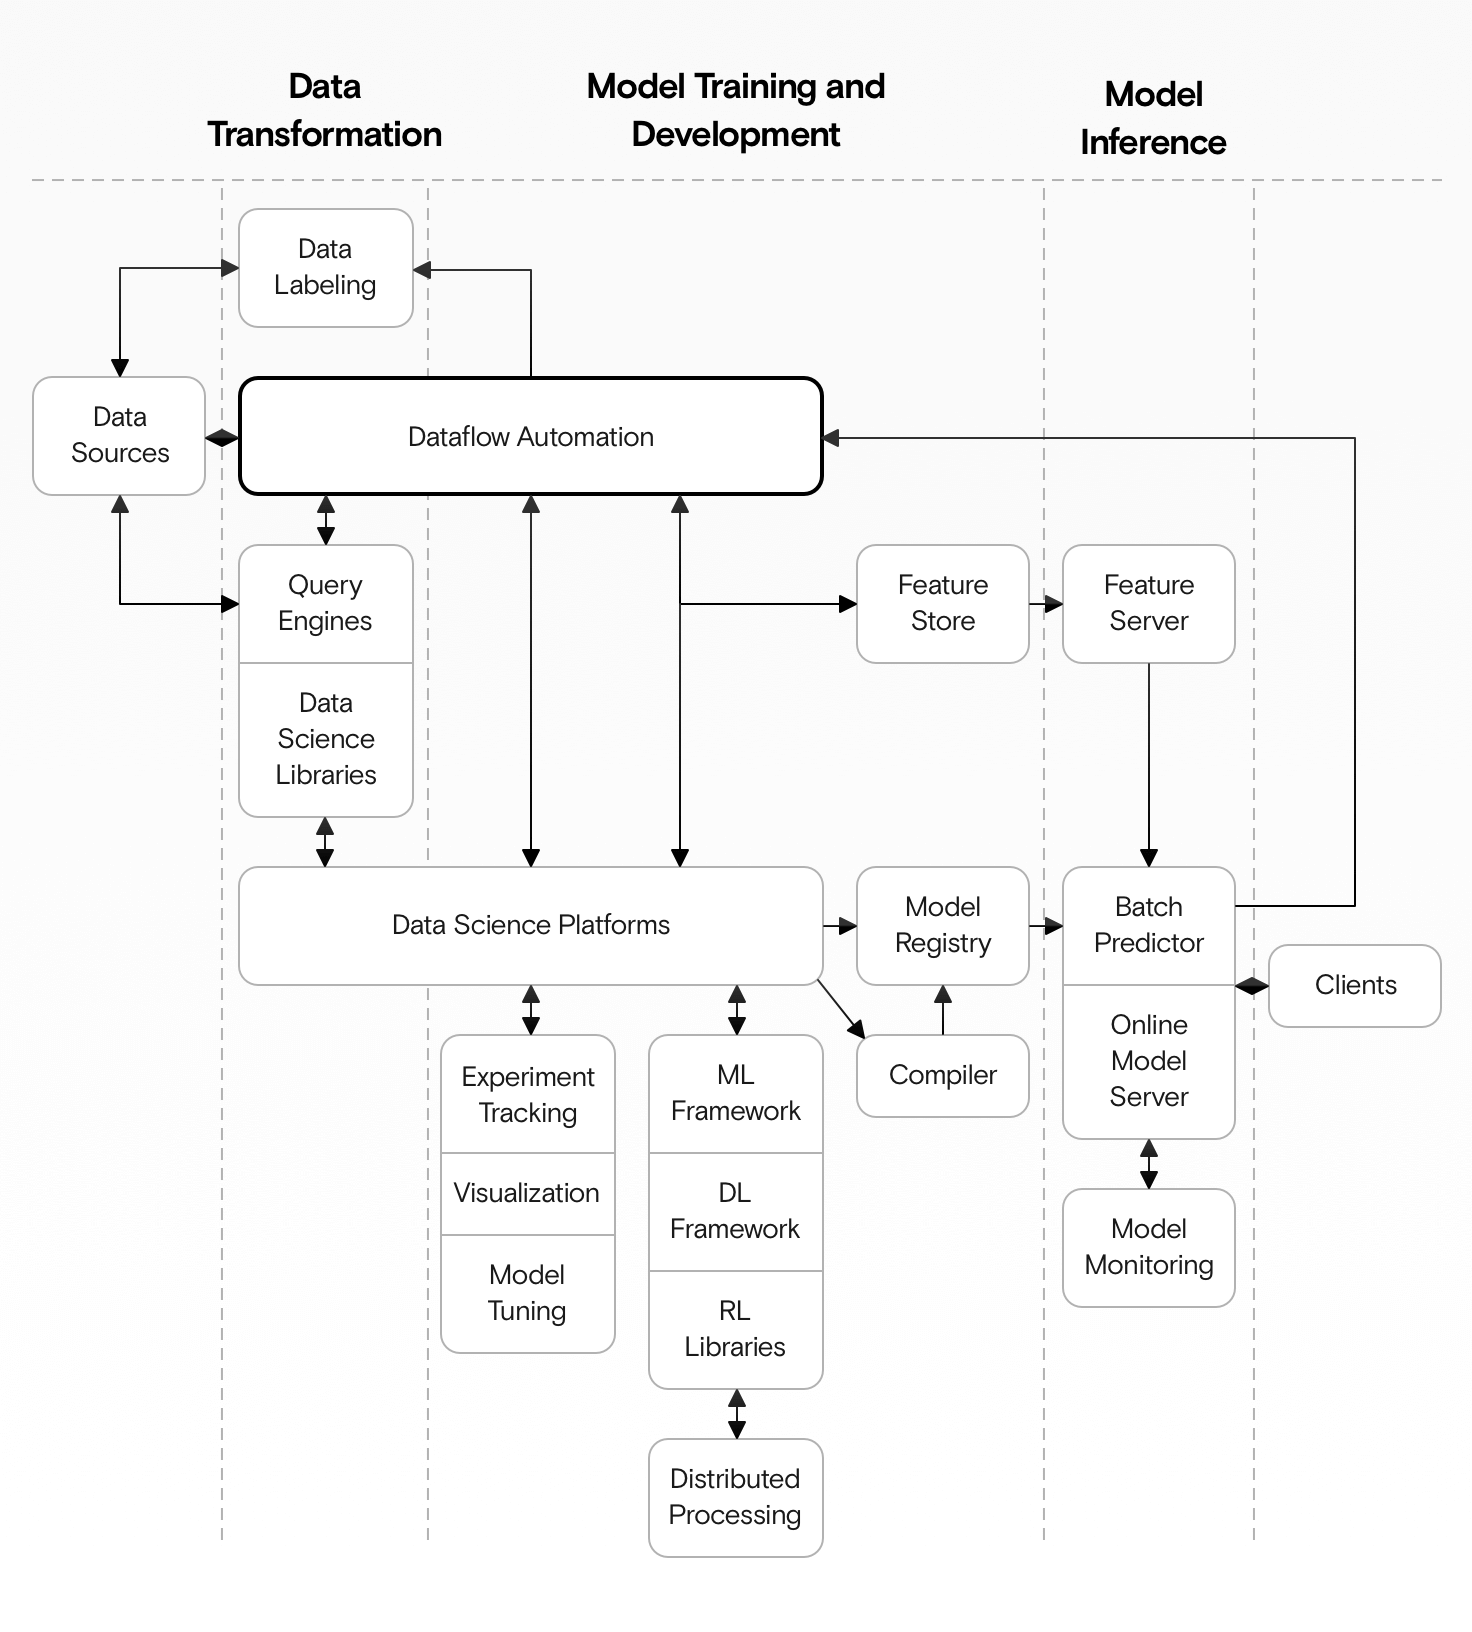 A diagram showing the components of an ML system and how they fit into the Data Transformation, Model Training and Development, and Model Inference categories.